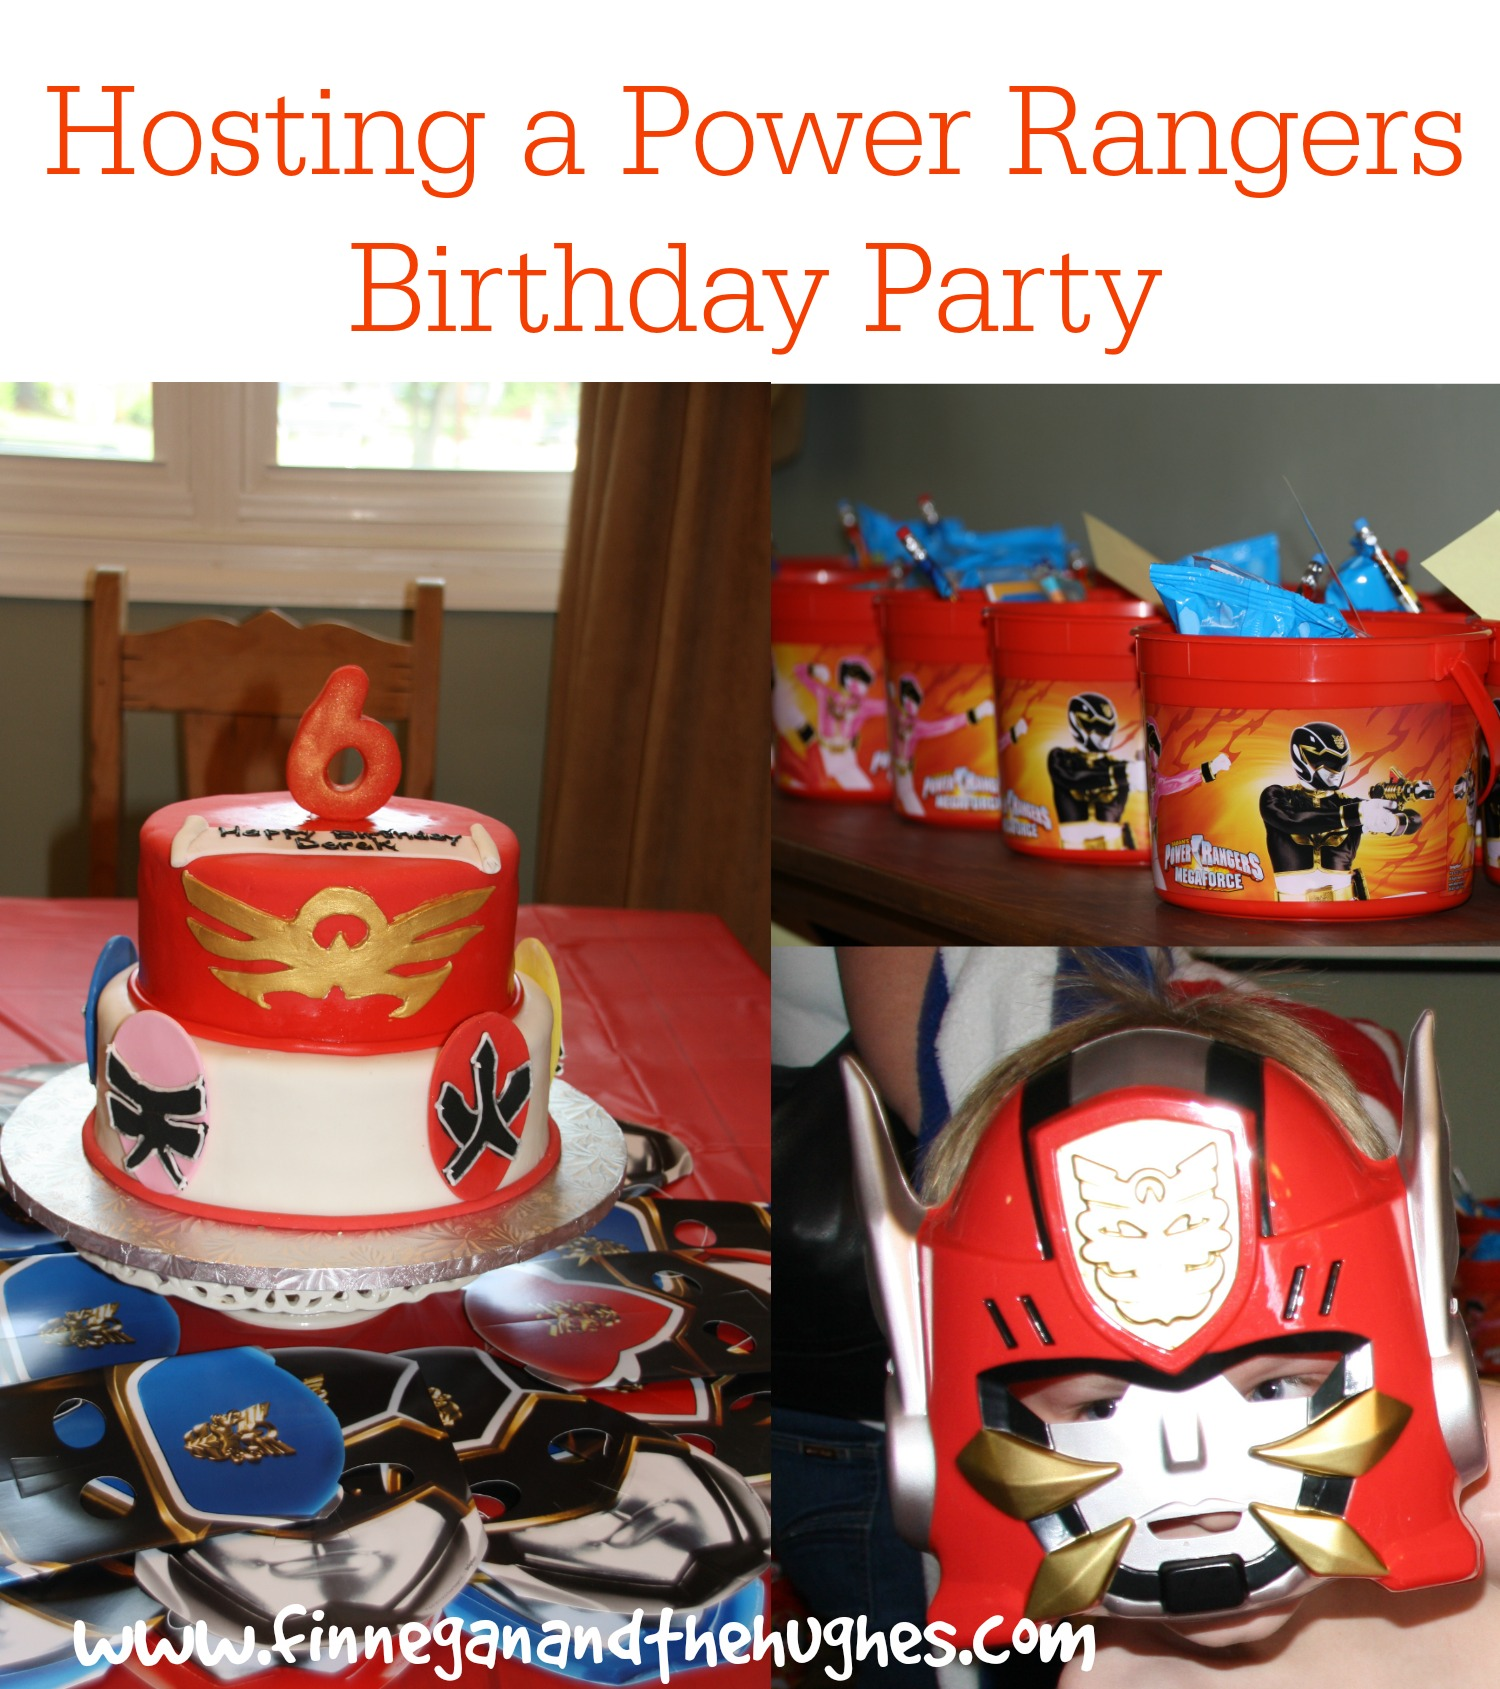 Hosting a Power Ranger Birthday Party